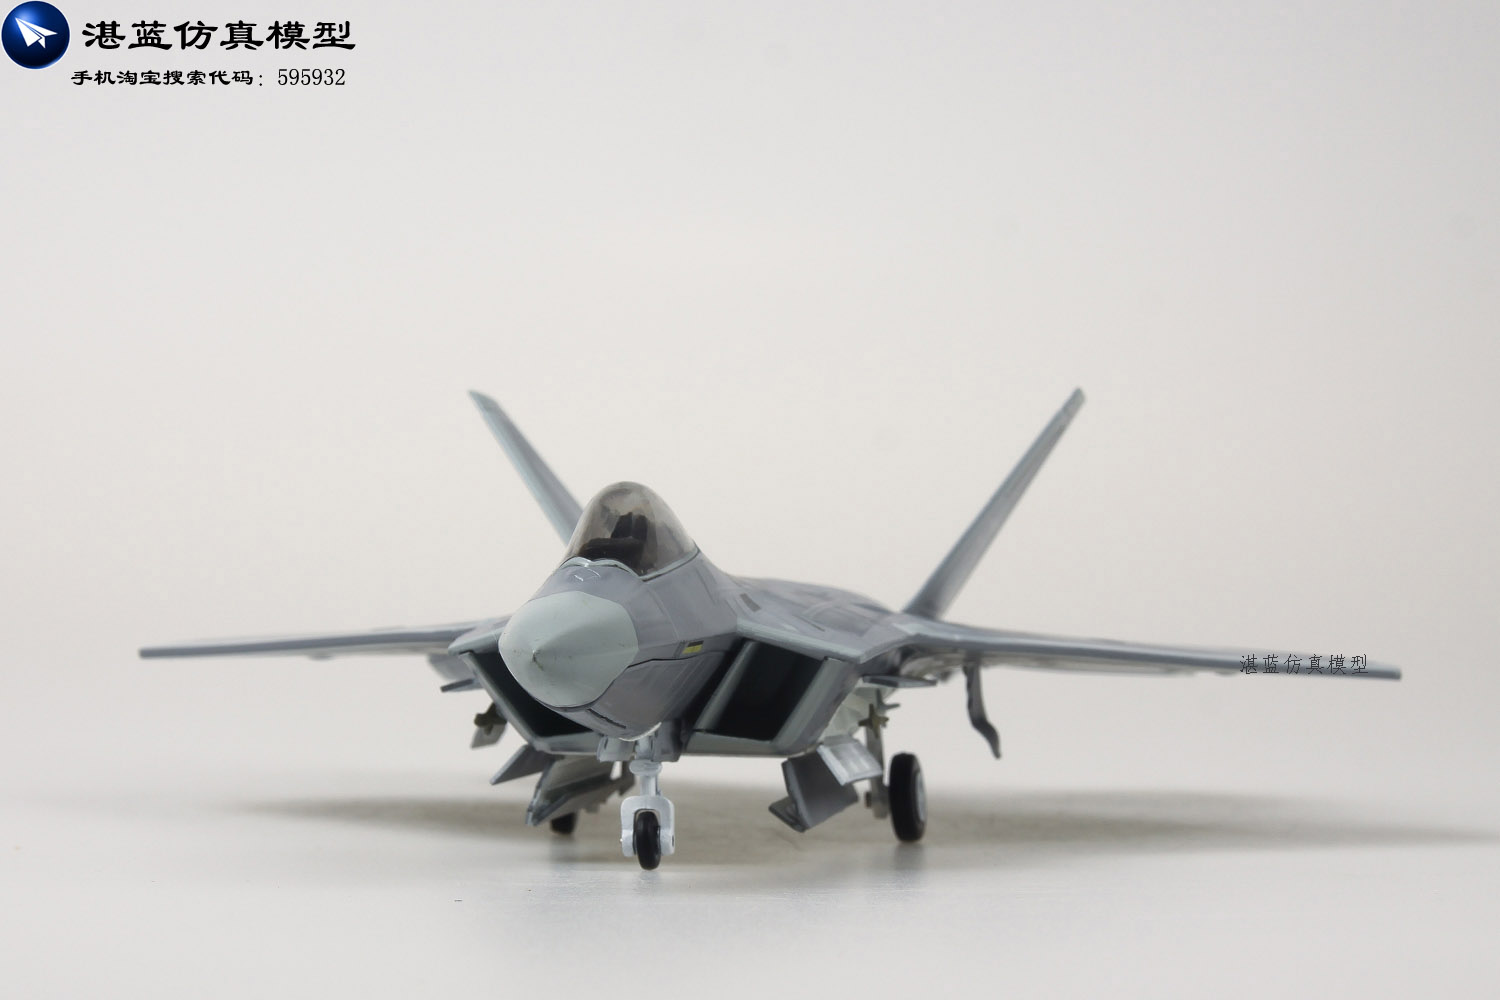 Brand New 1/72 Scale Airplane Model Toys USAF F-22 Raptor Fighter Diecast Metal Plane Model Toy For Gift/Collection/Decoration maisto jeep wrangler rubicon fire engine 1 18 scale alloy model metal diecast car toys high quality collection kids toys gift